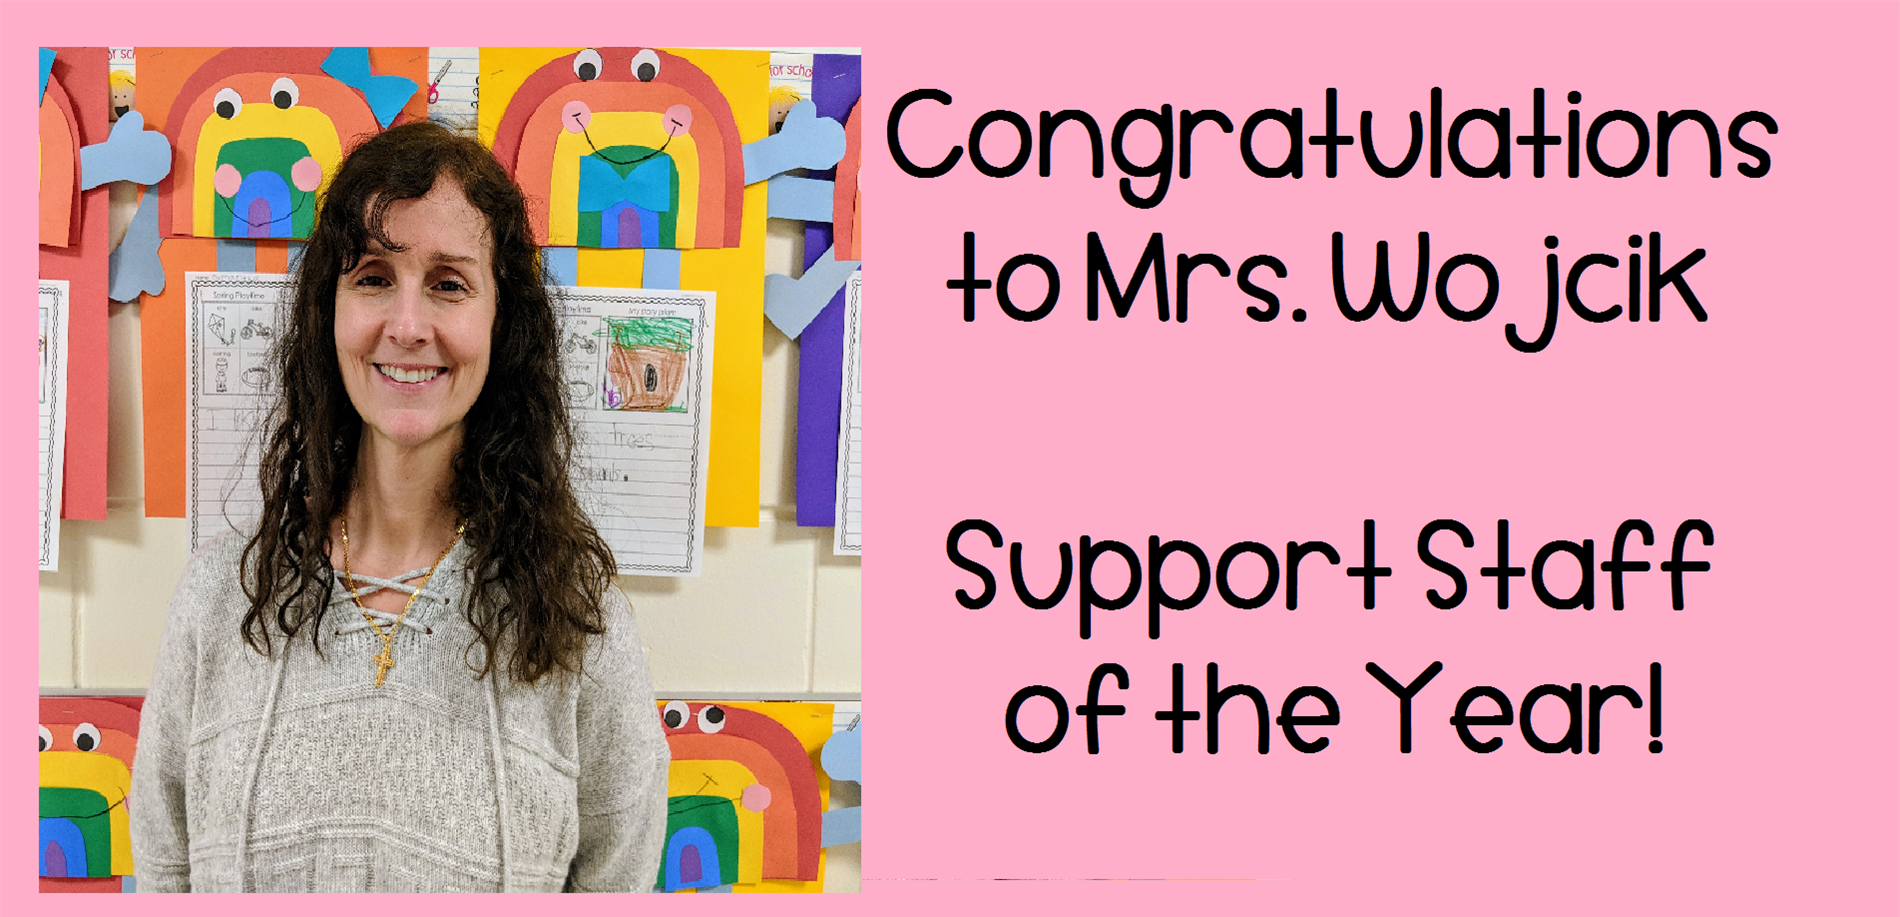 Congratulations to Mrs. Veronica Wojcik, Support Staff of the Year